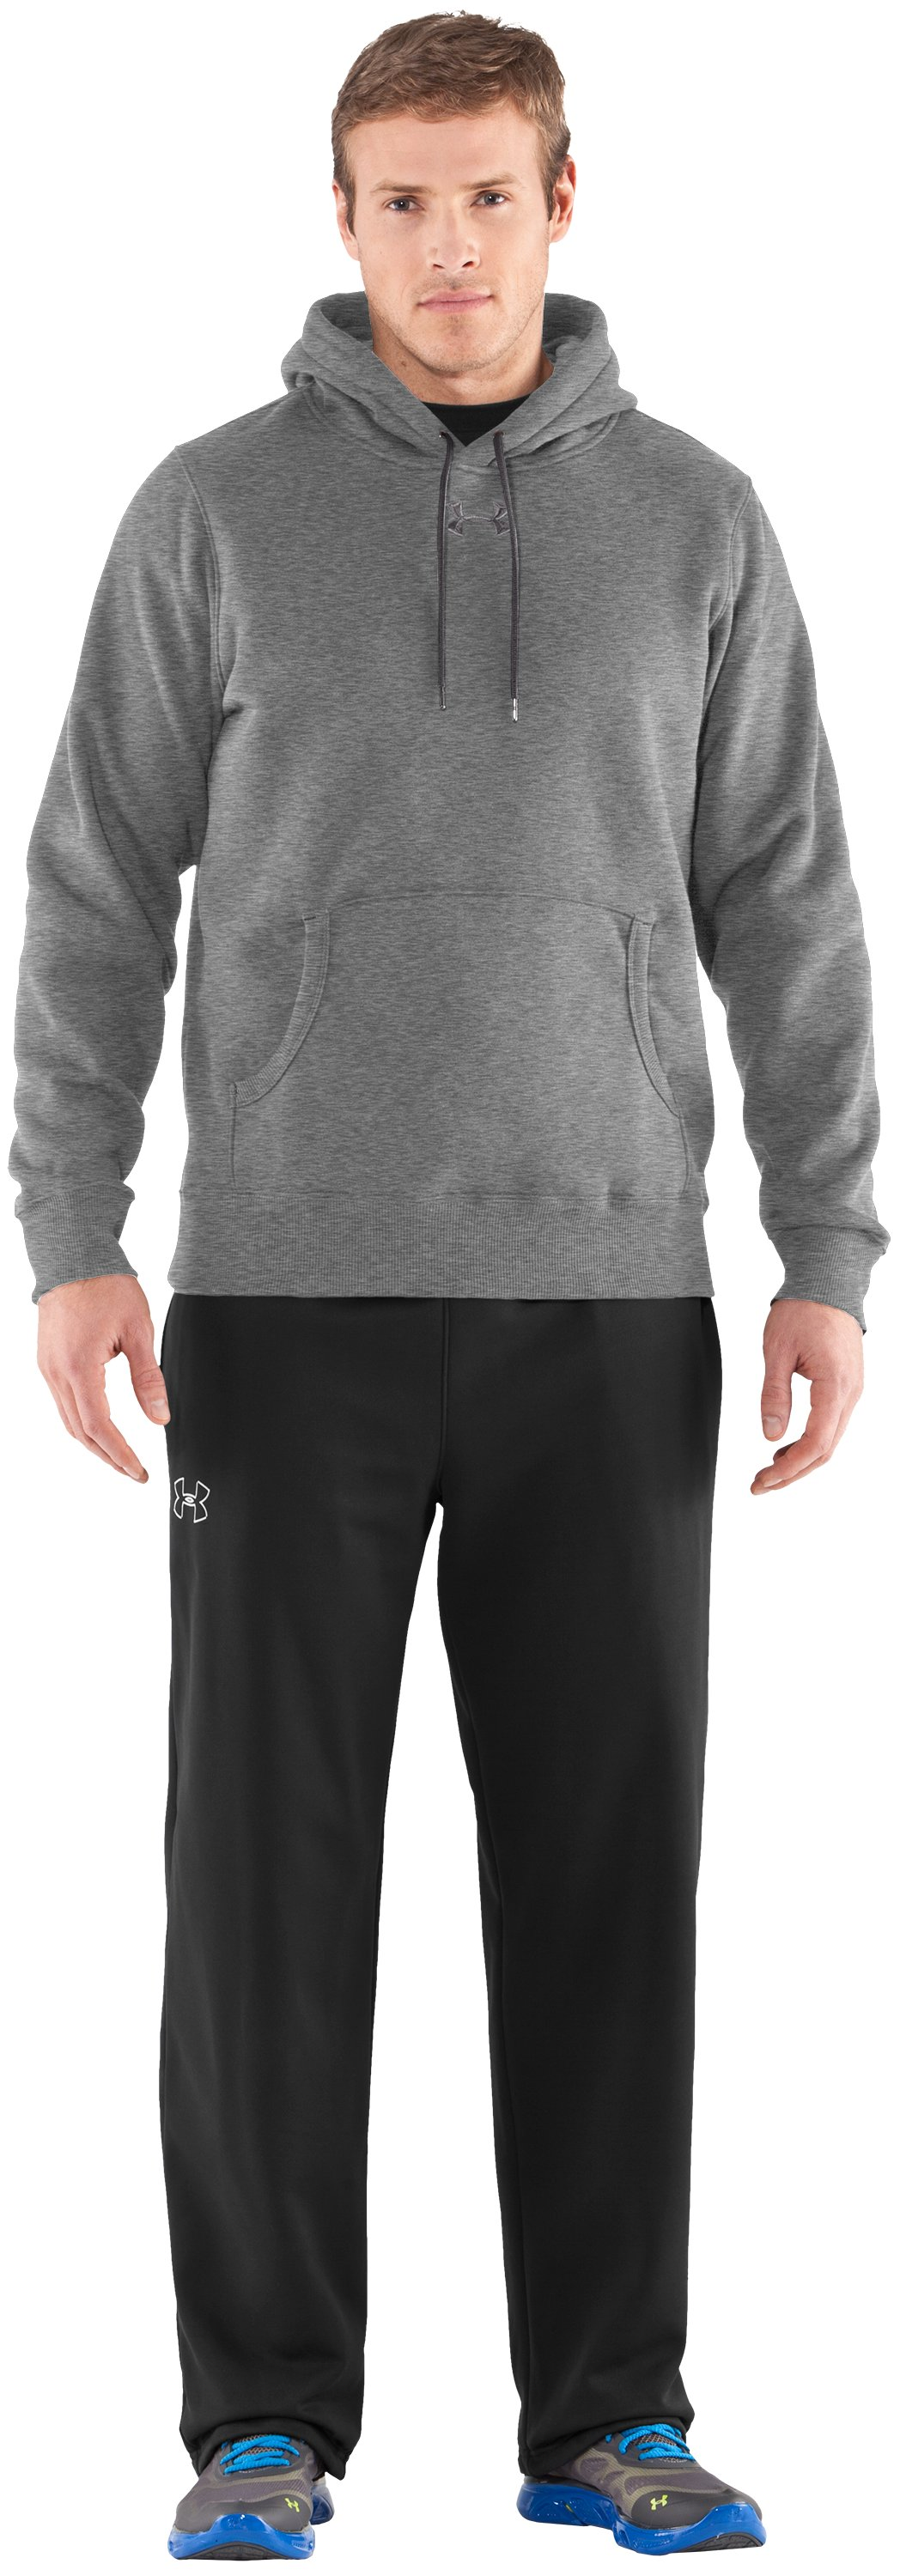 Men's Team Charged Cotton® Storm Hoodie, True Gray Heather, Front